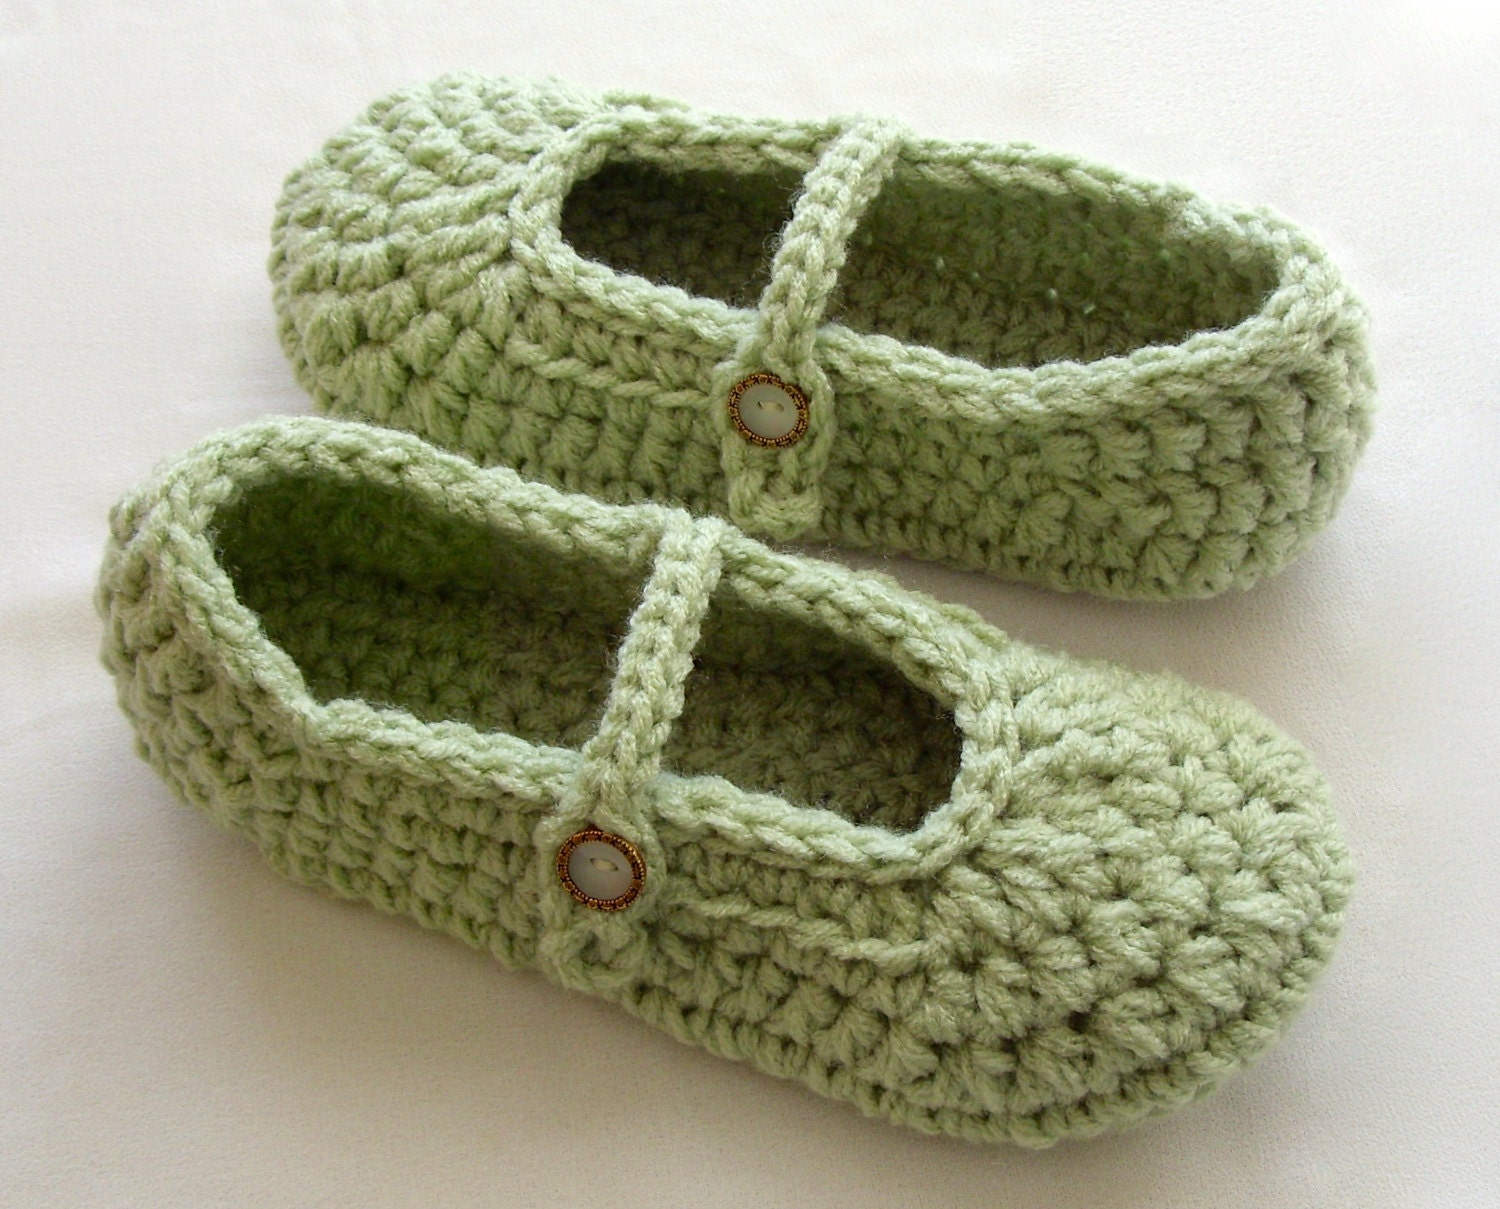 Knotty Generation: Mary Jane Baby Booties Crochet Pattern